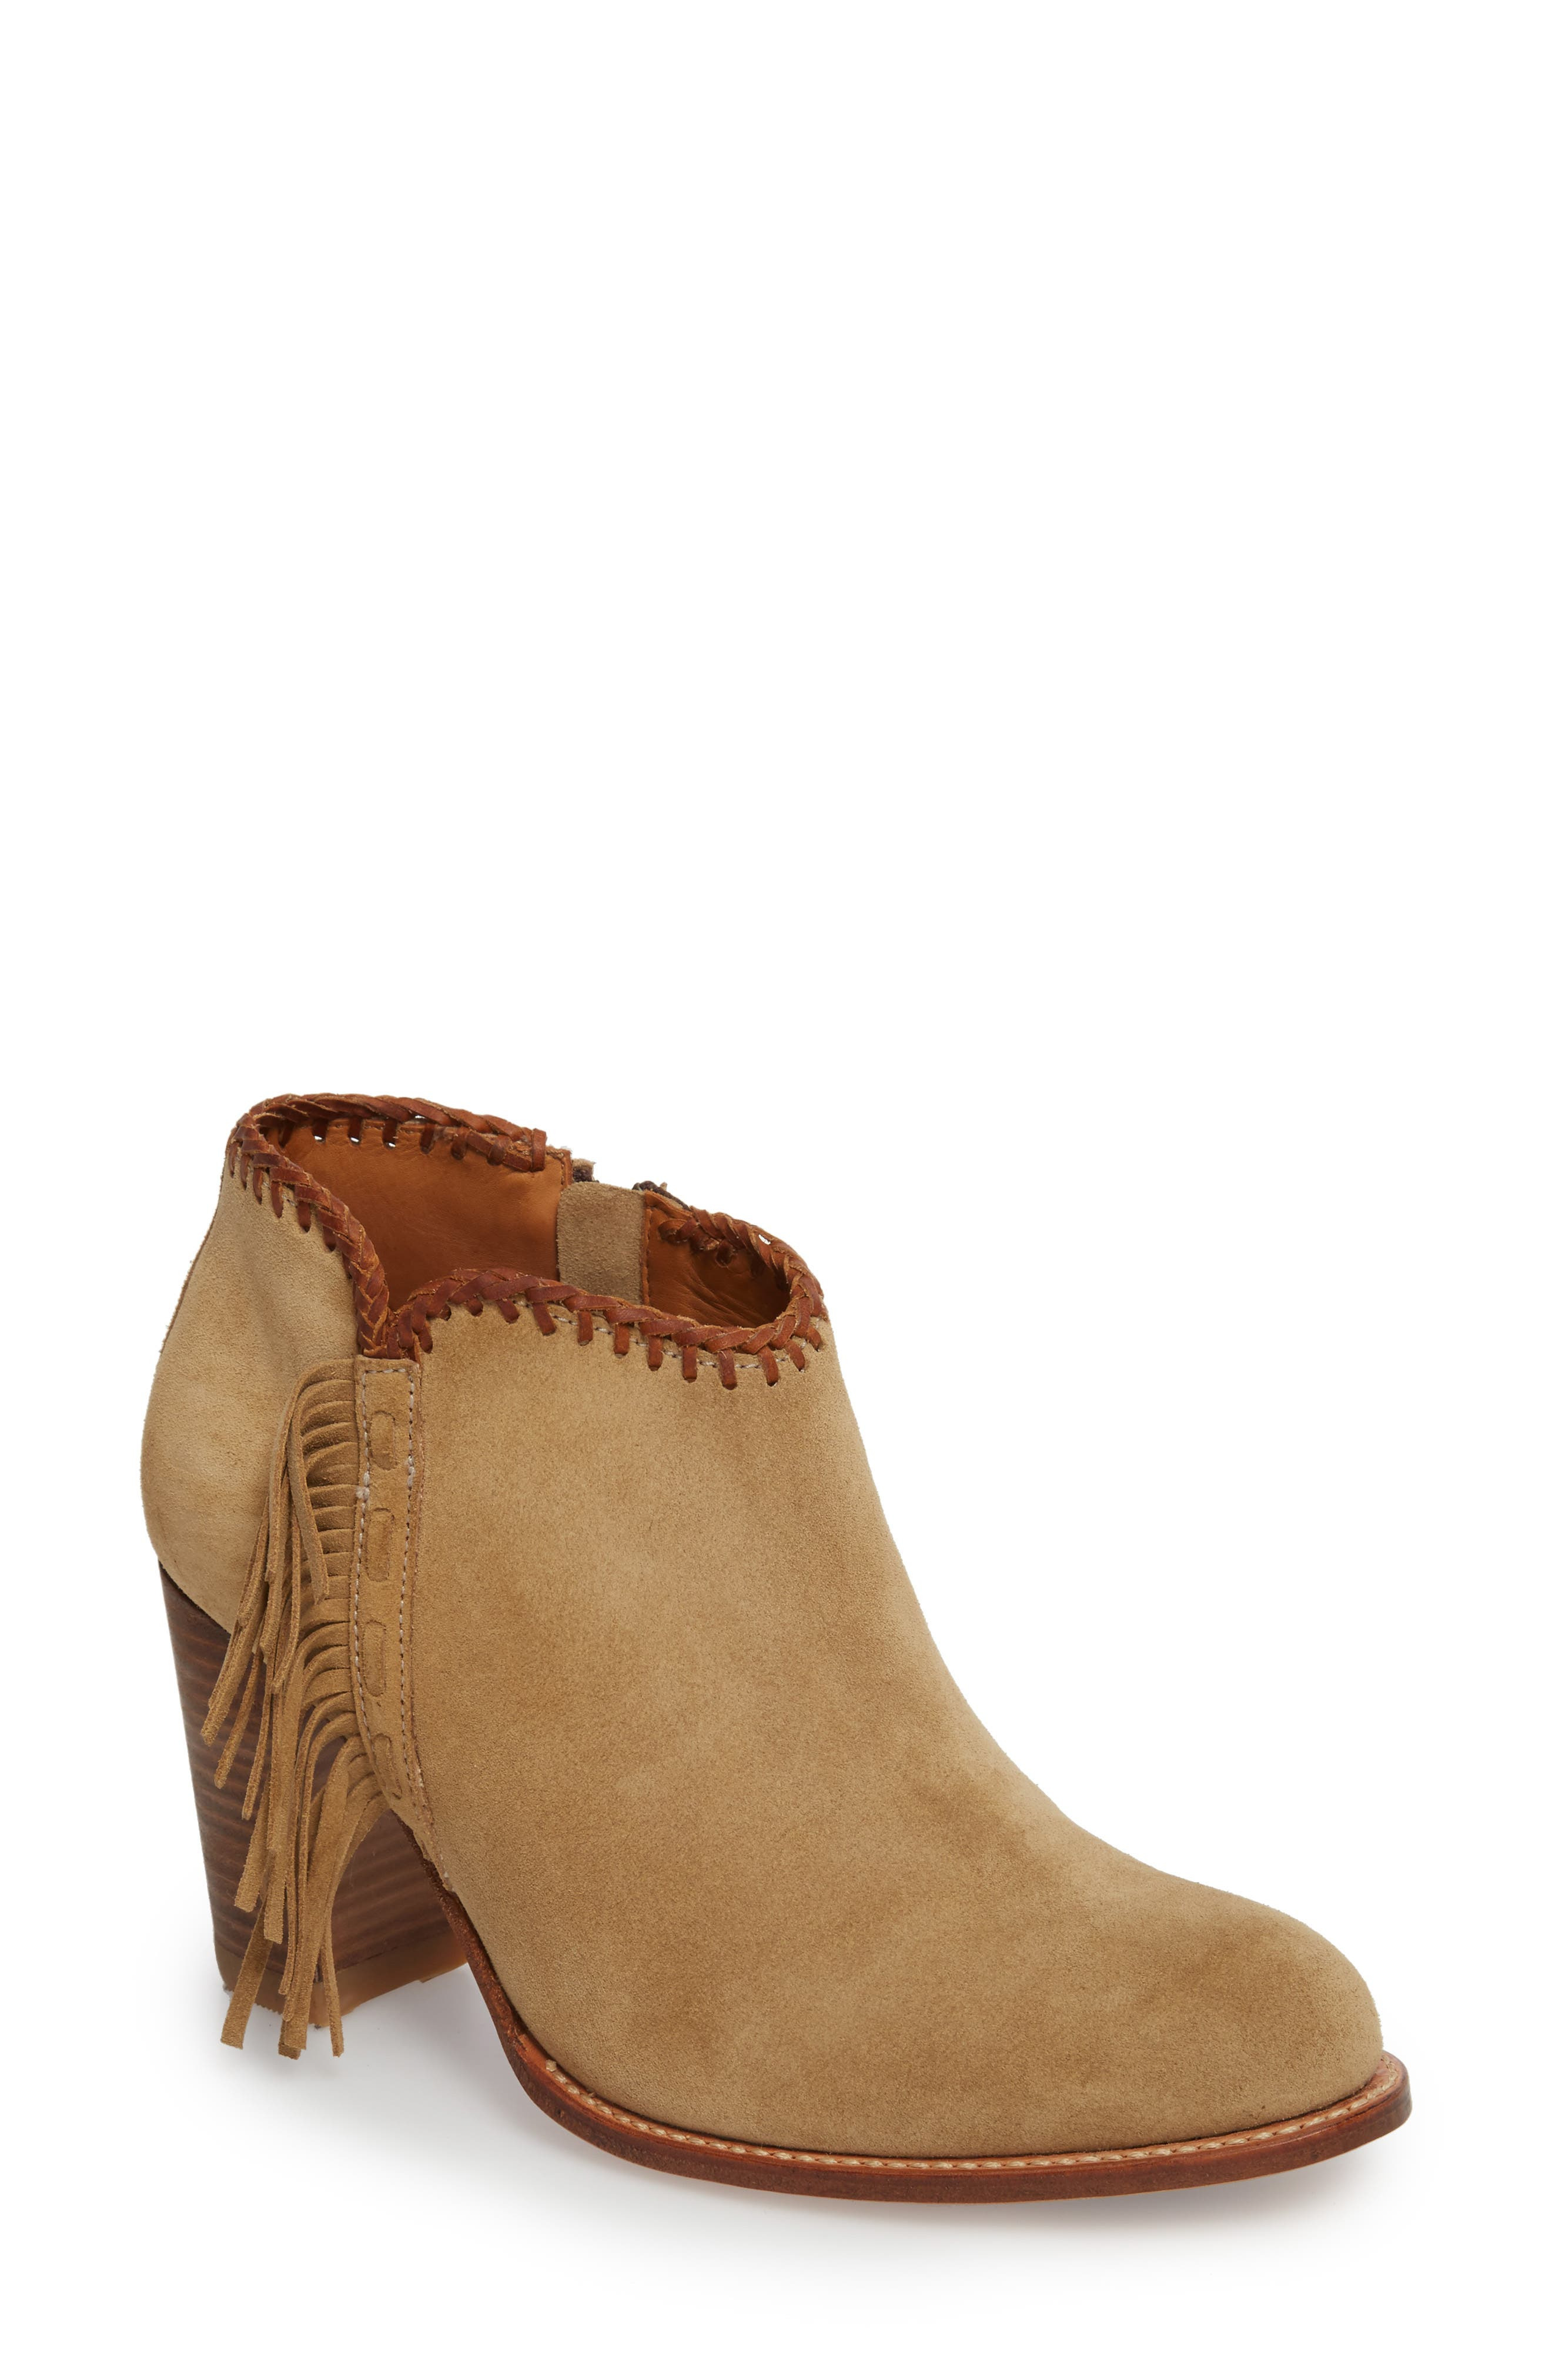 Sonya Fringed Bootie,                             Main thumbnail 1, color,                             250